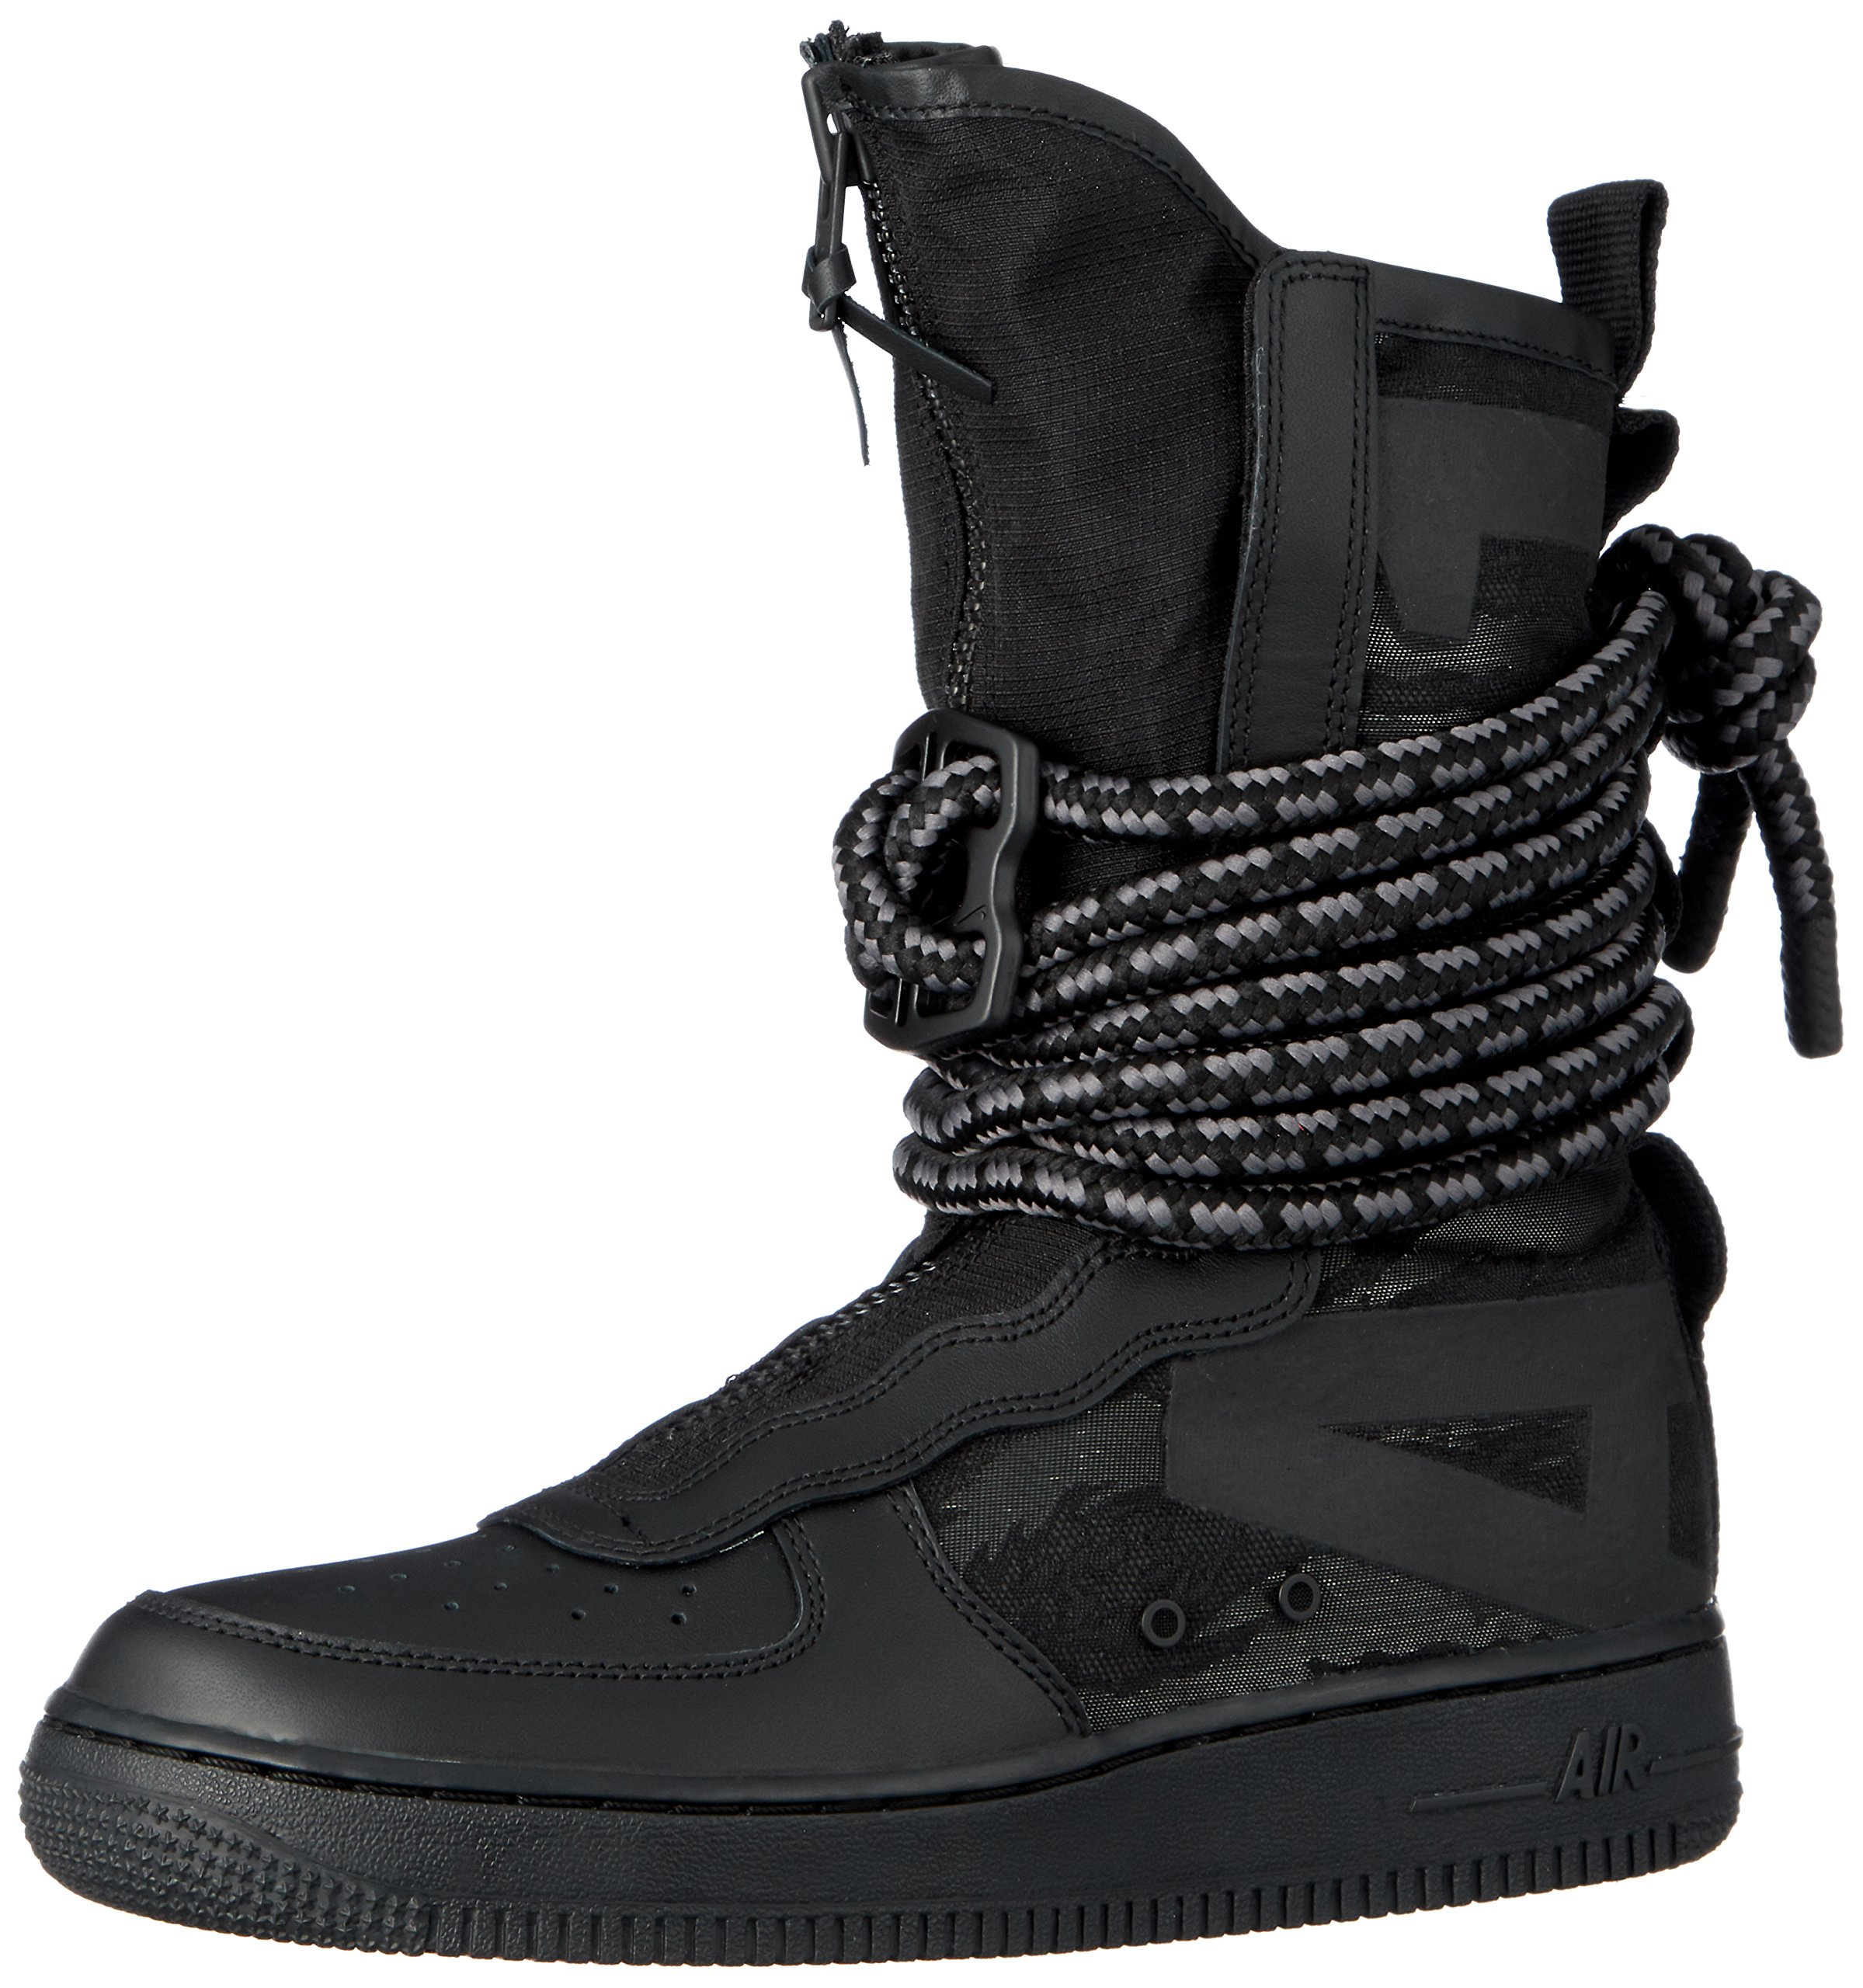 358b045fc791 Galleon - Nike SF Air Force 1 High Men s Shoes Black Grey Aa1128-002 (9.5  D(M) US)